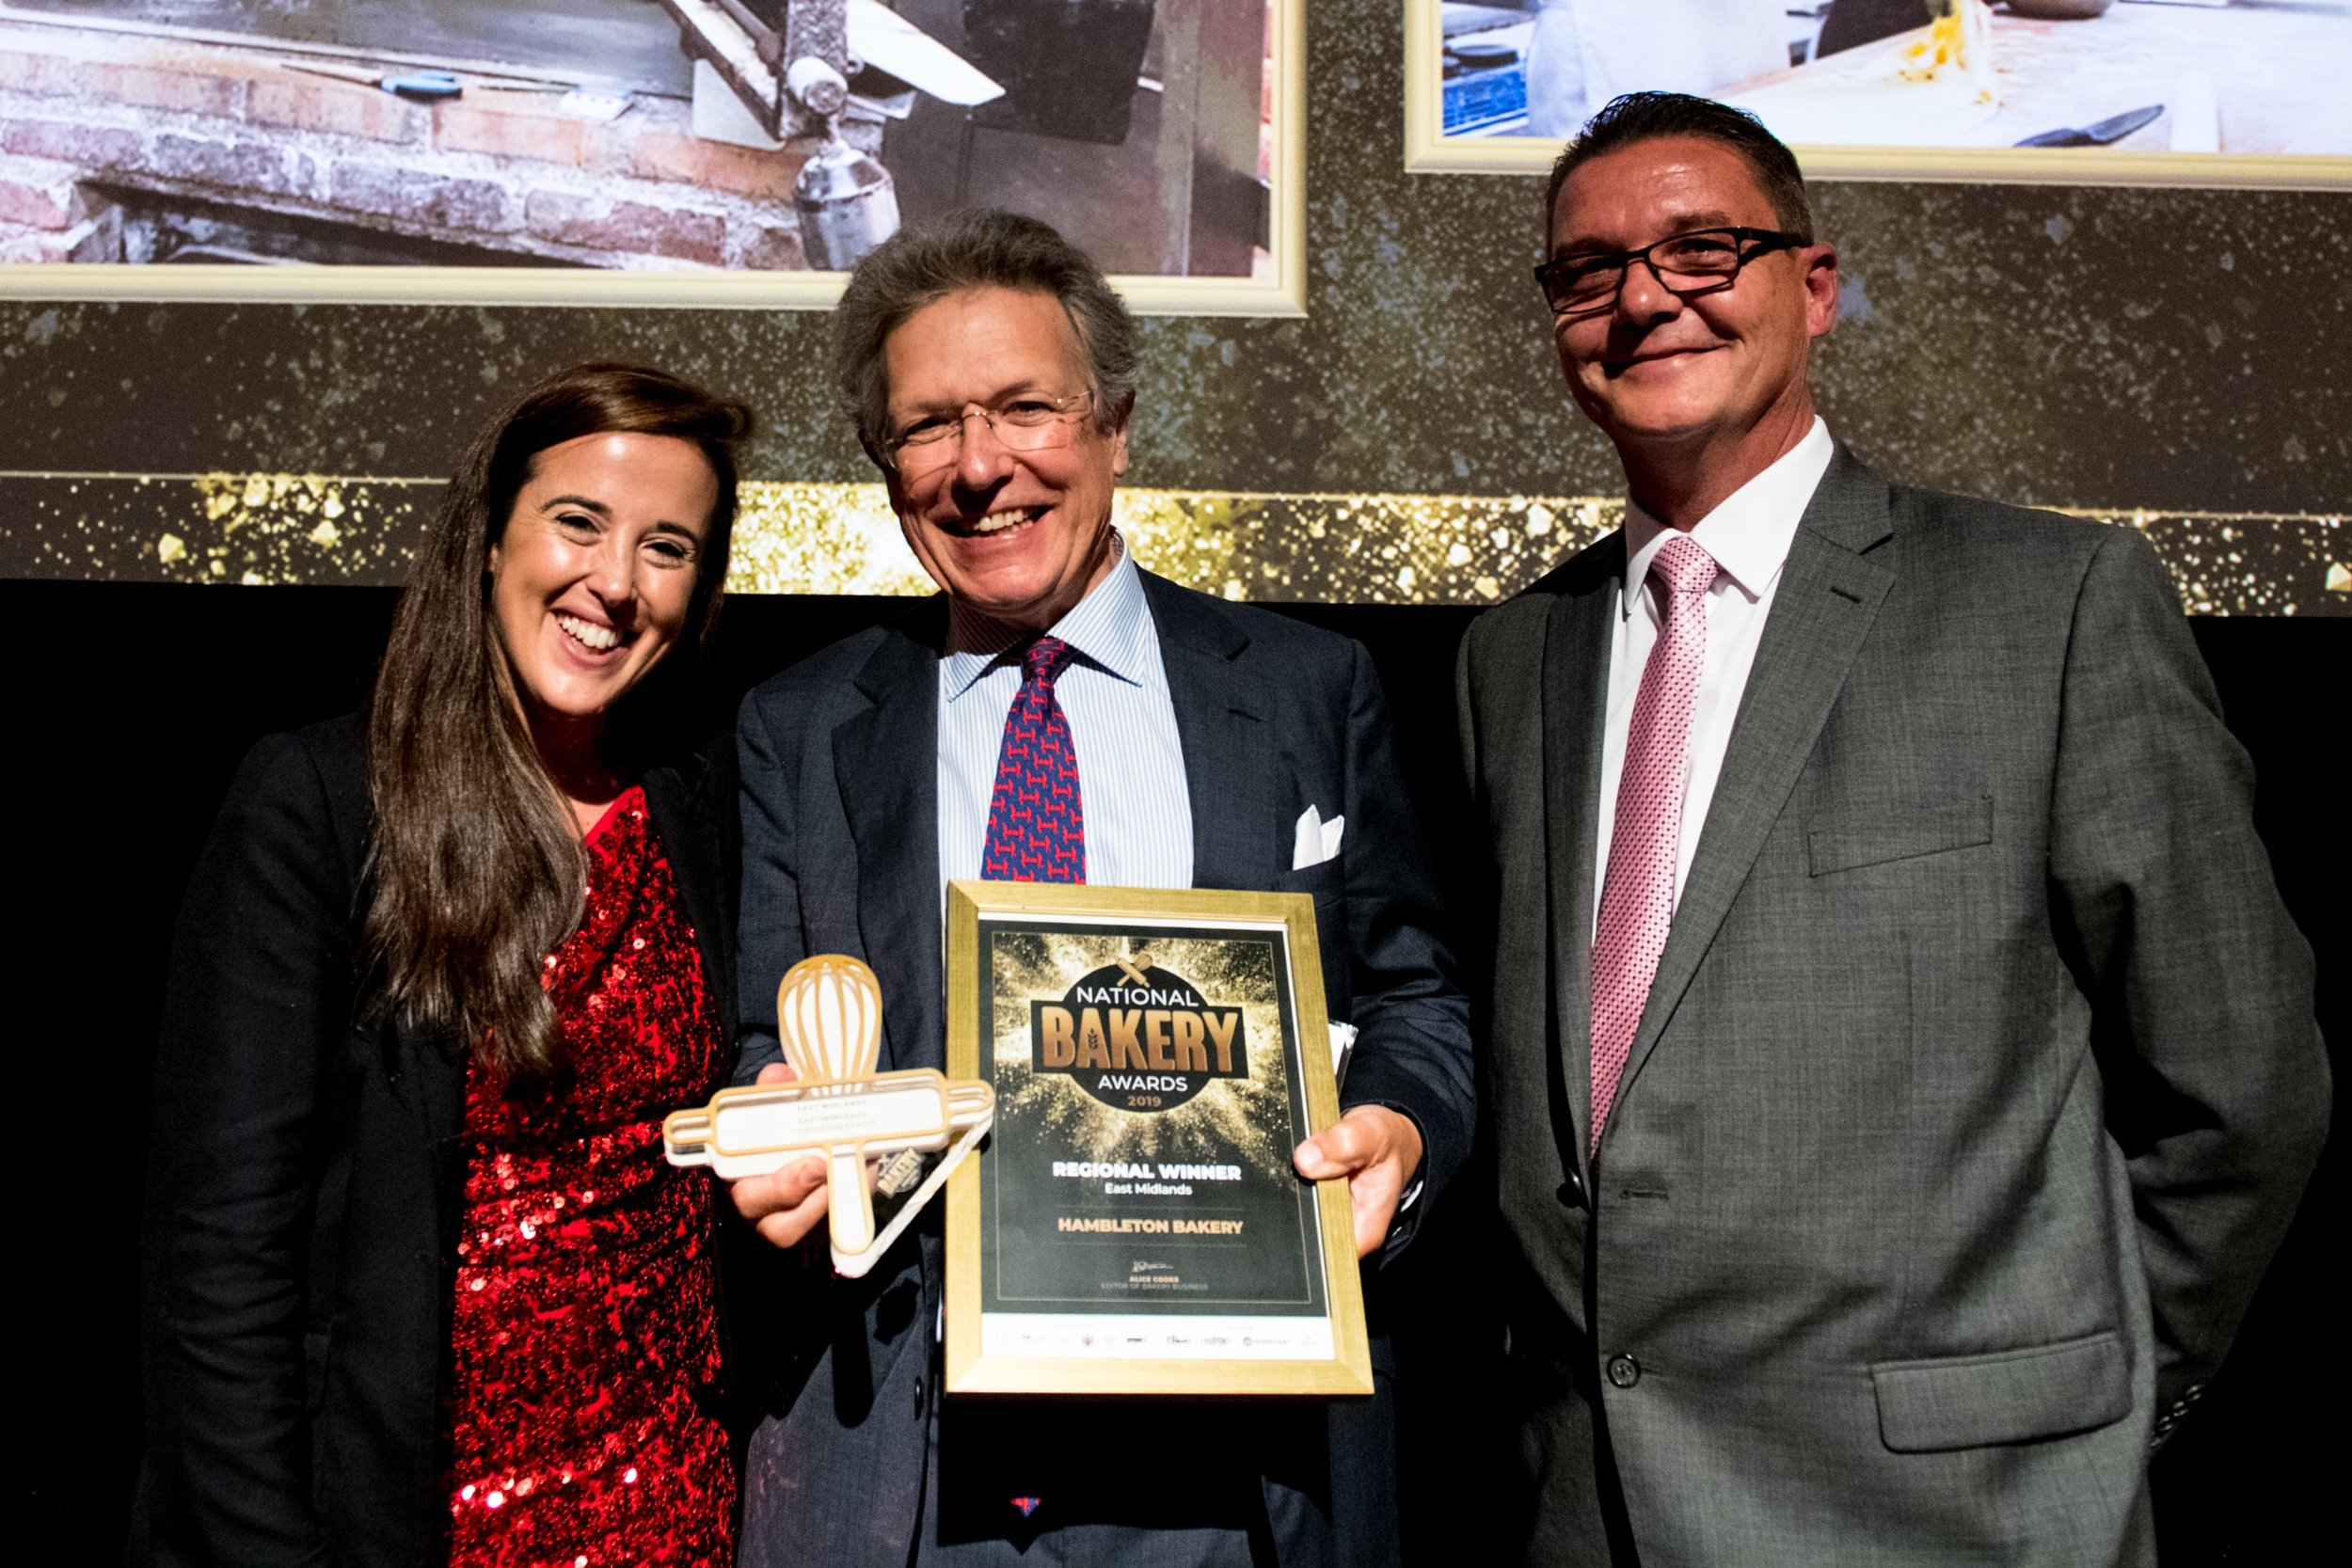 Hambleton_bakery_National_bakery_awards_tim_hart.jpg